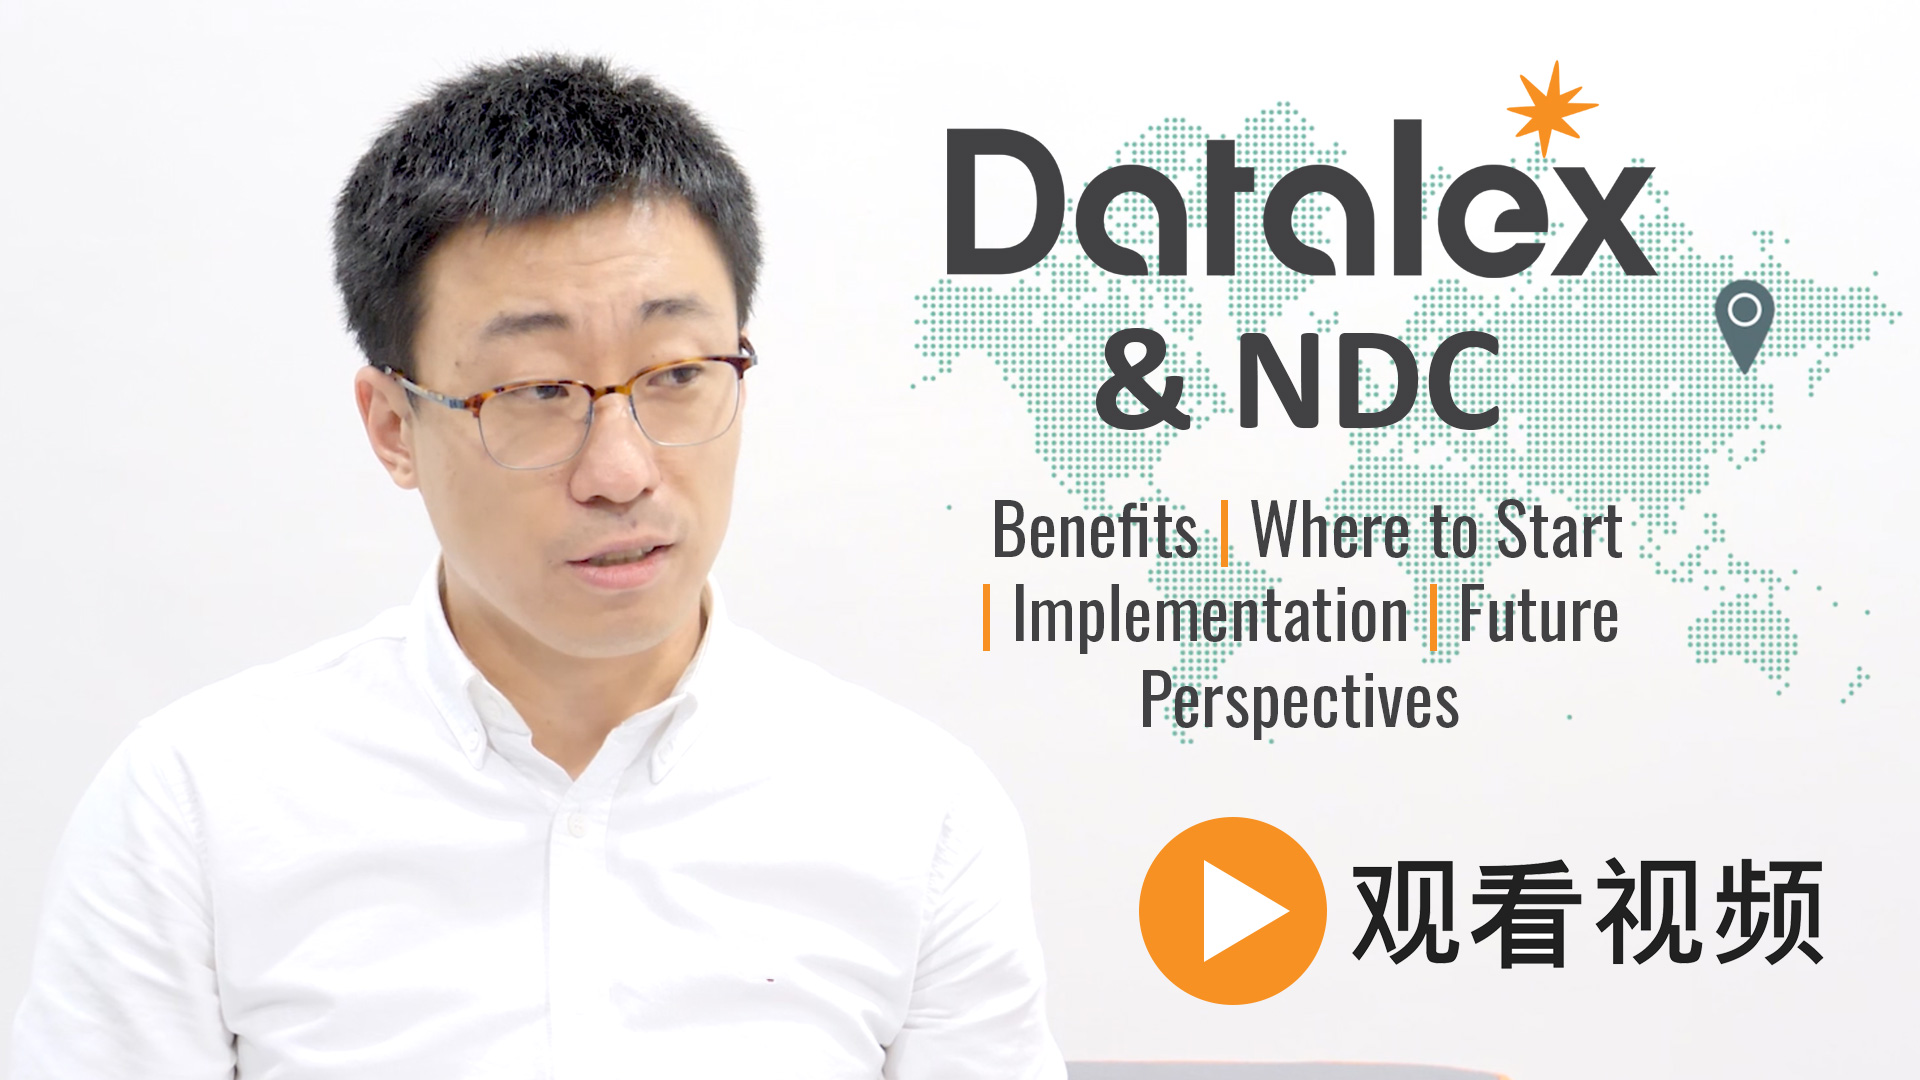 Datalex NDC with Chinese subtitles